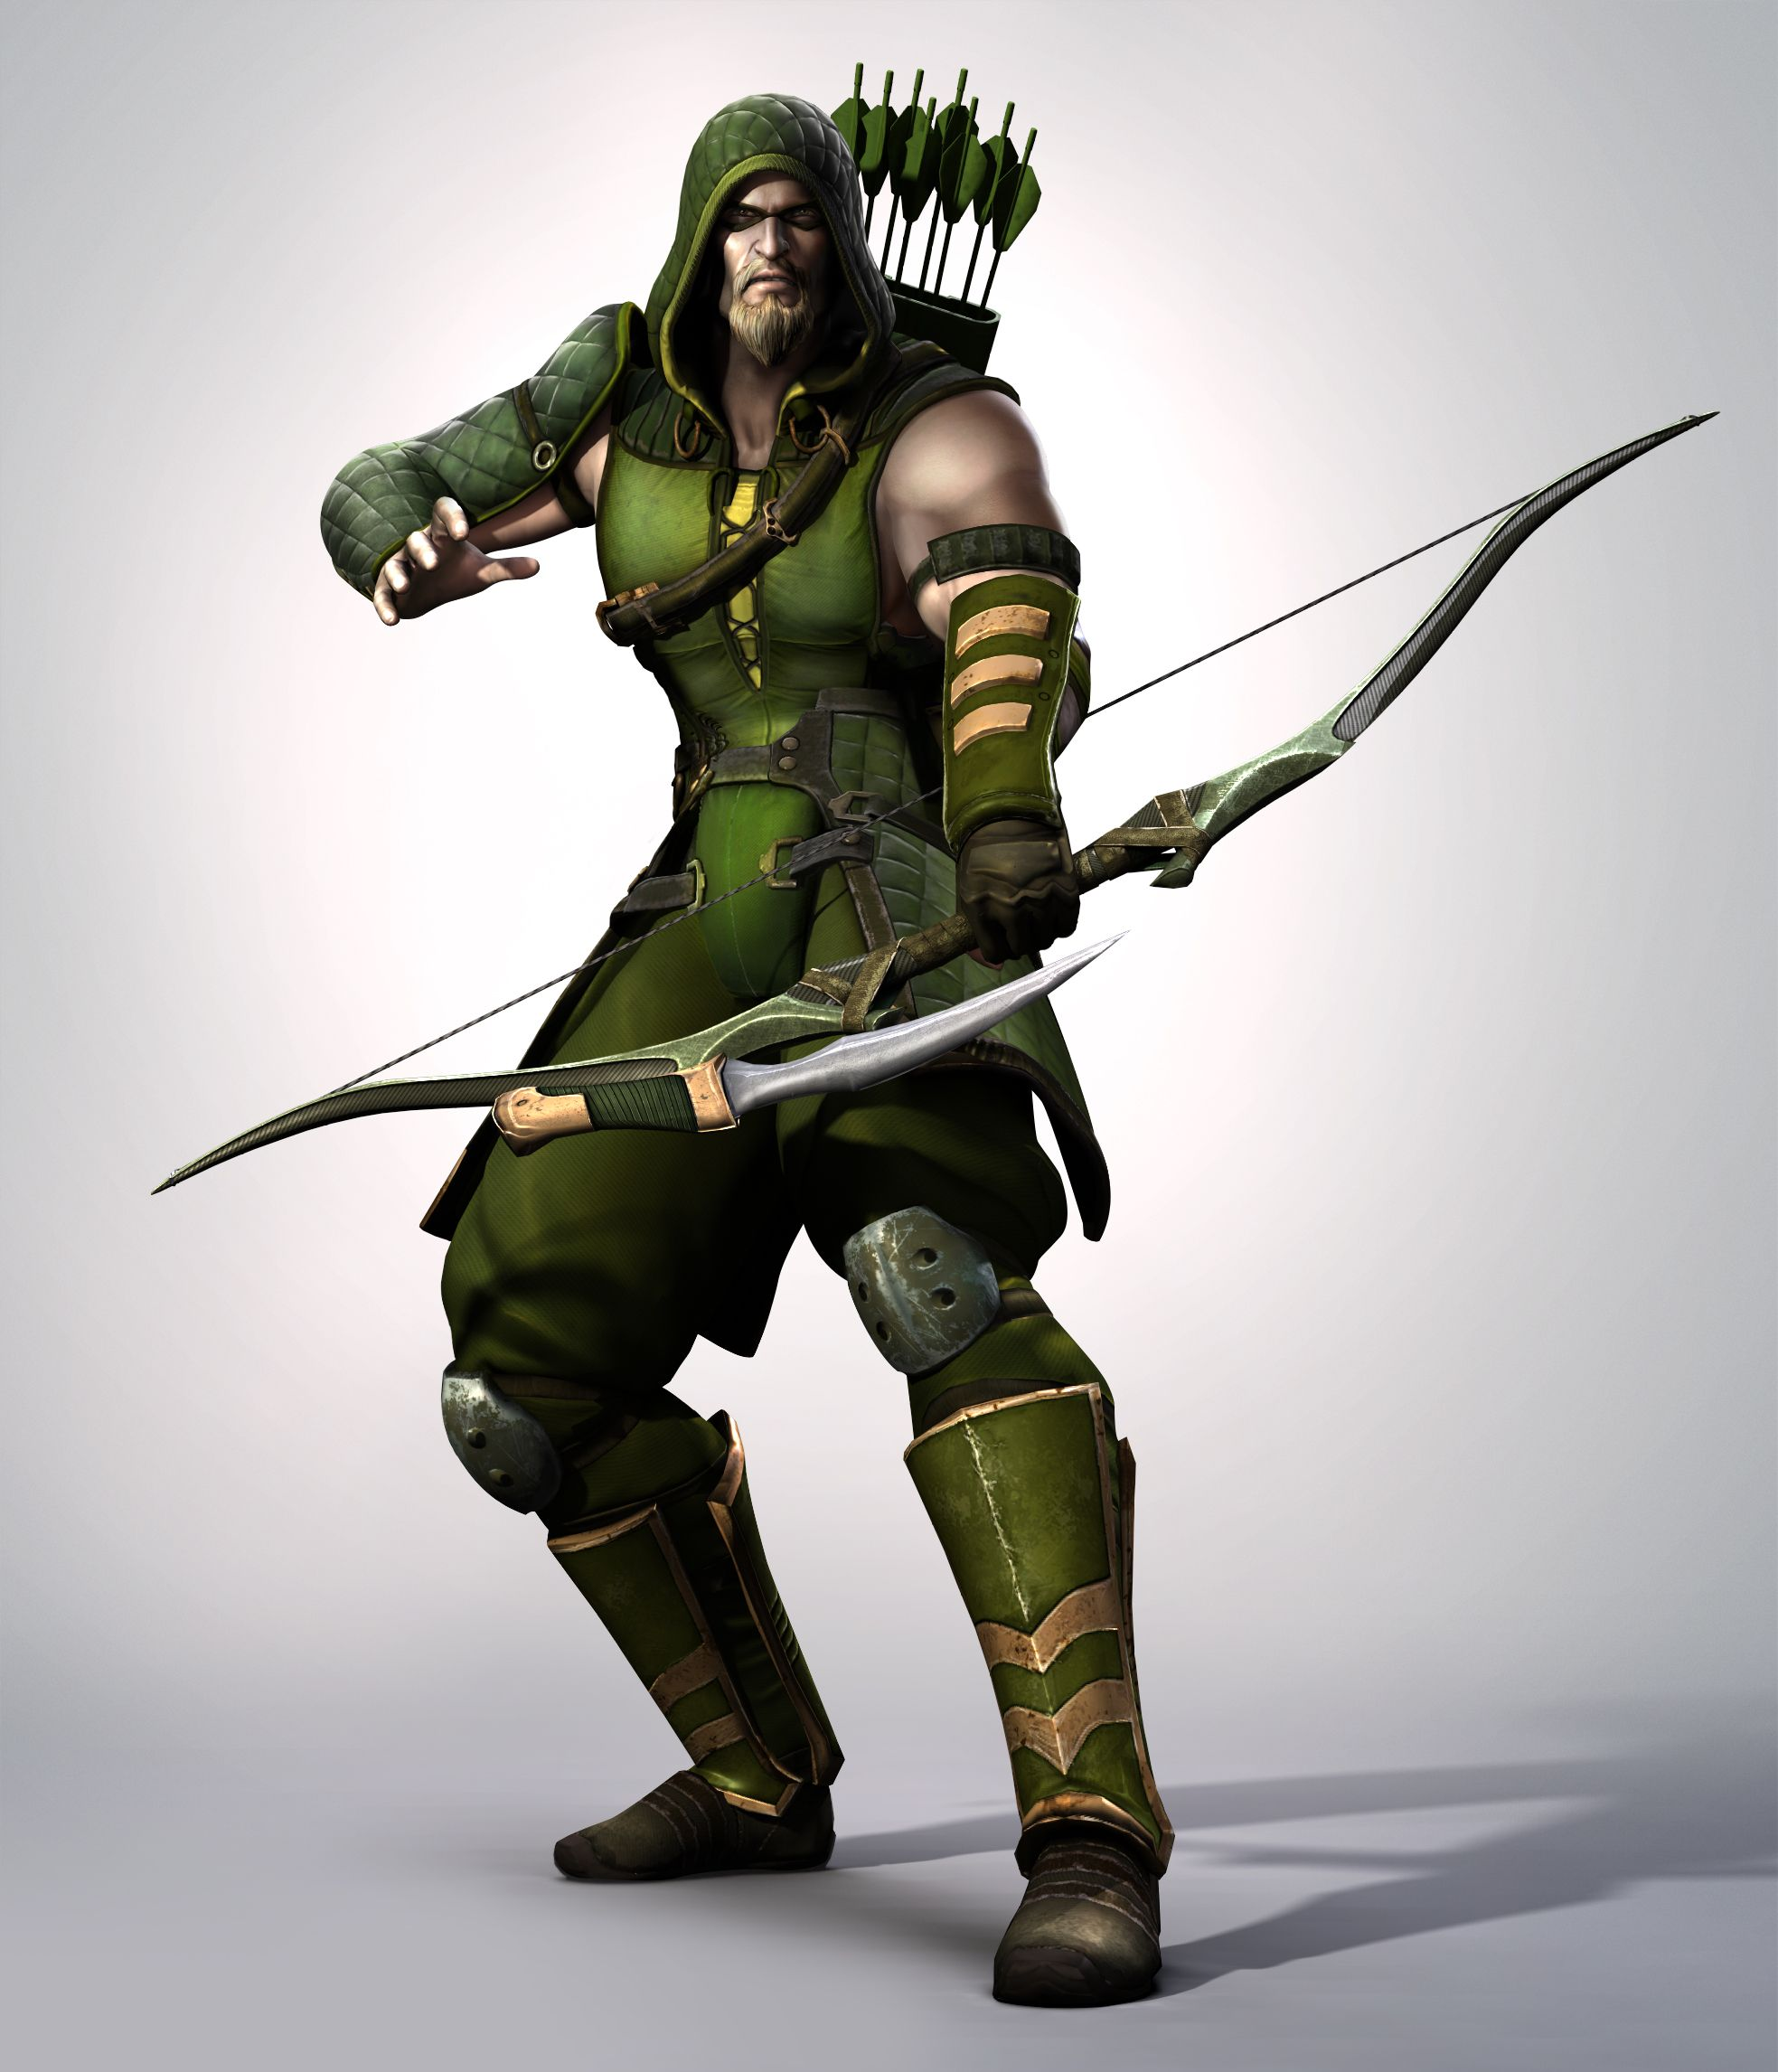 Injustice: Gods Among Us Green Arrow